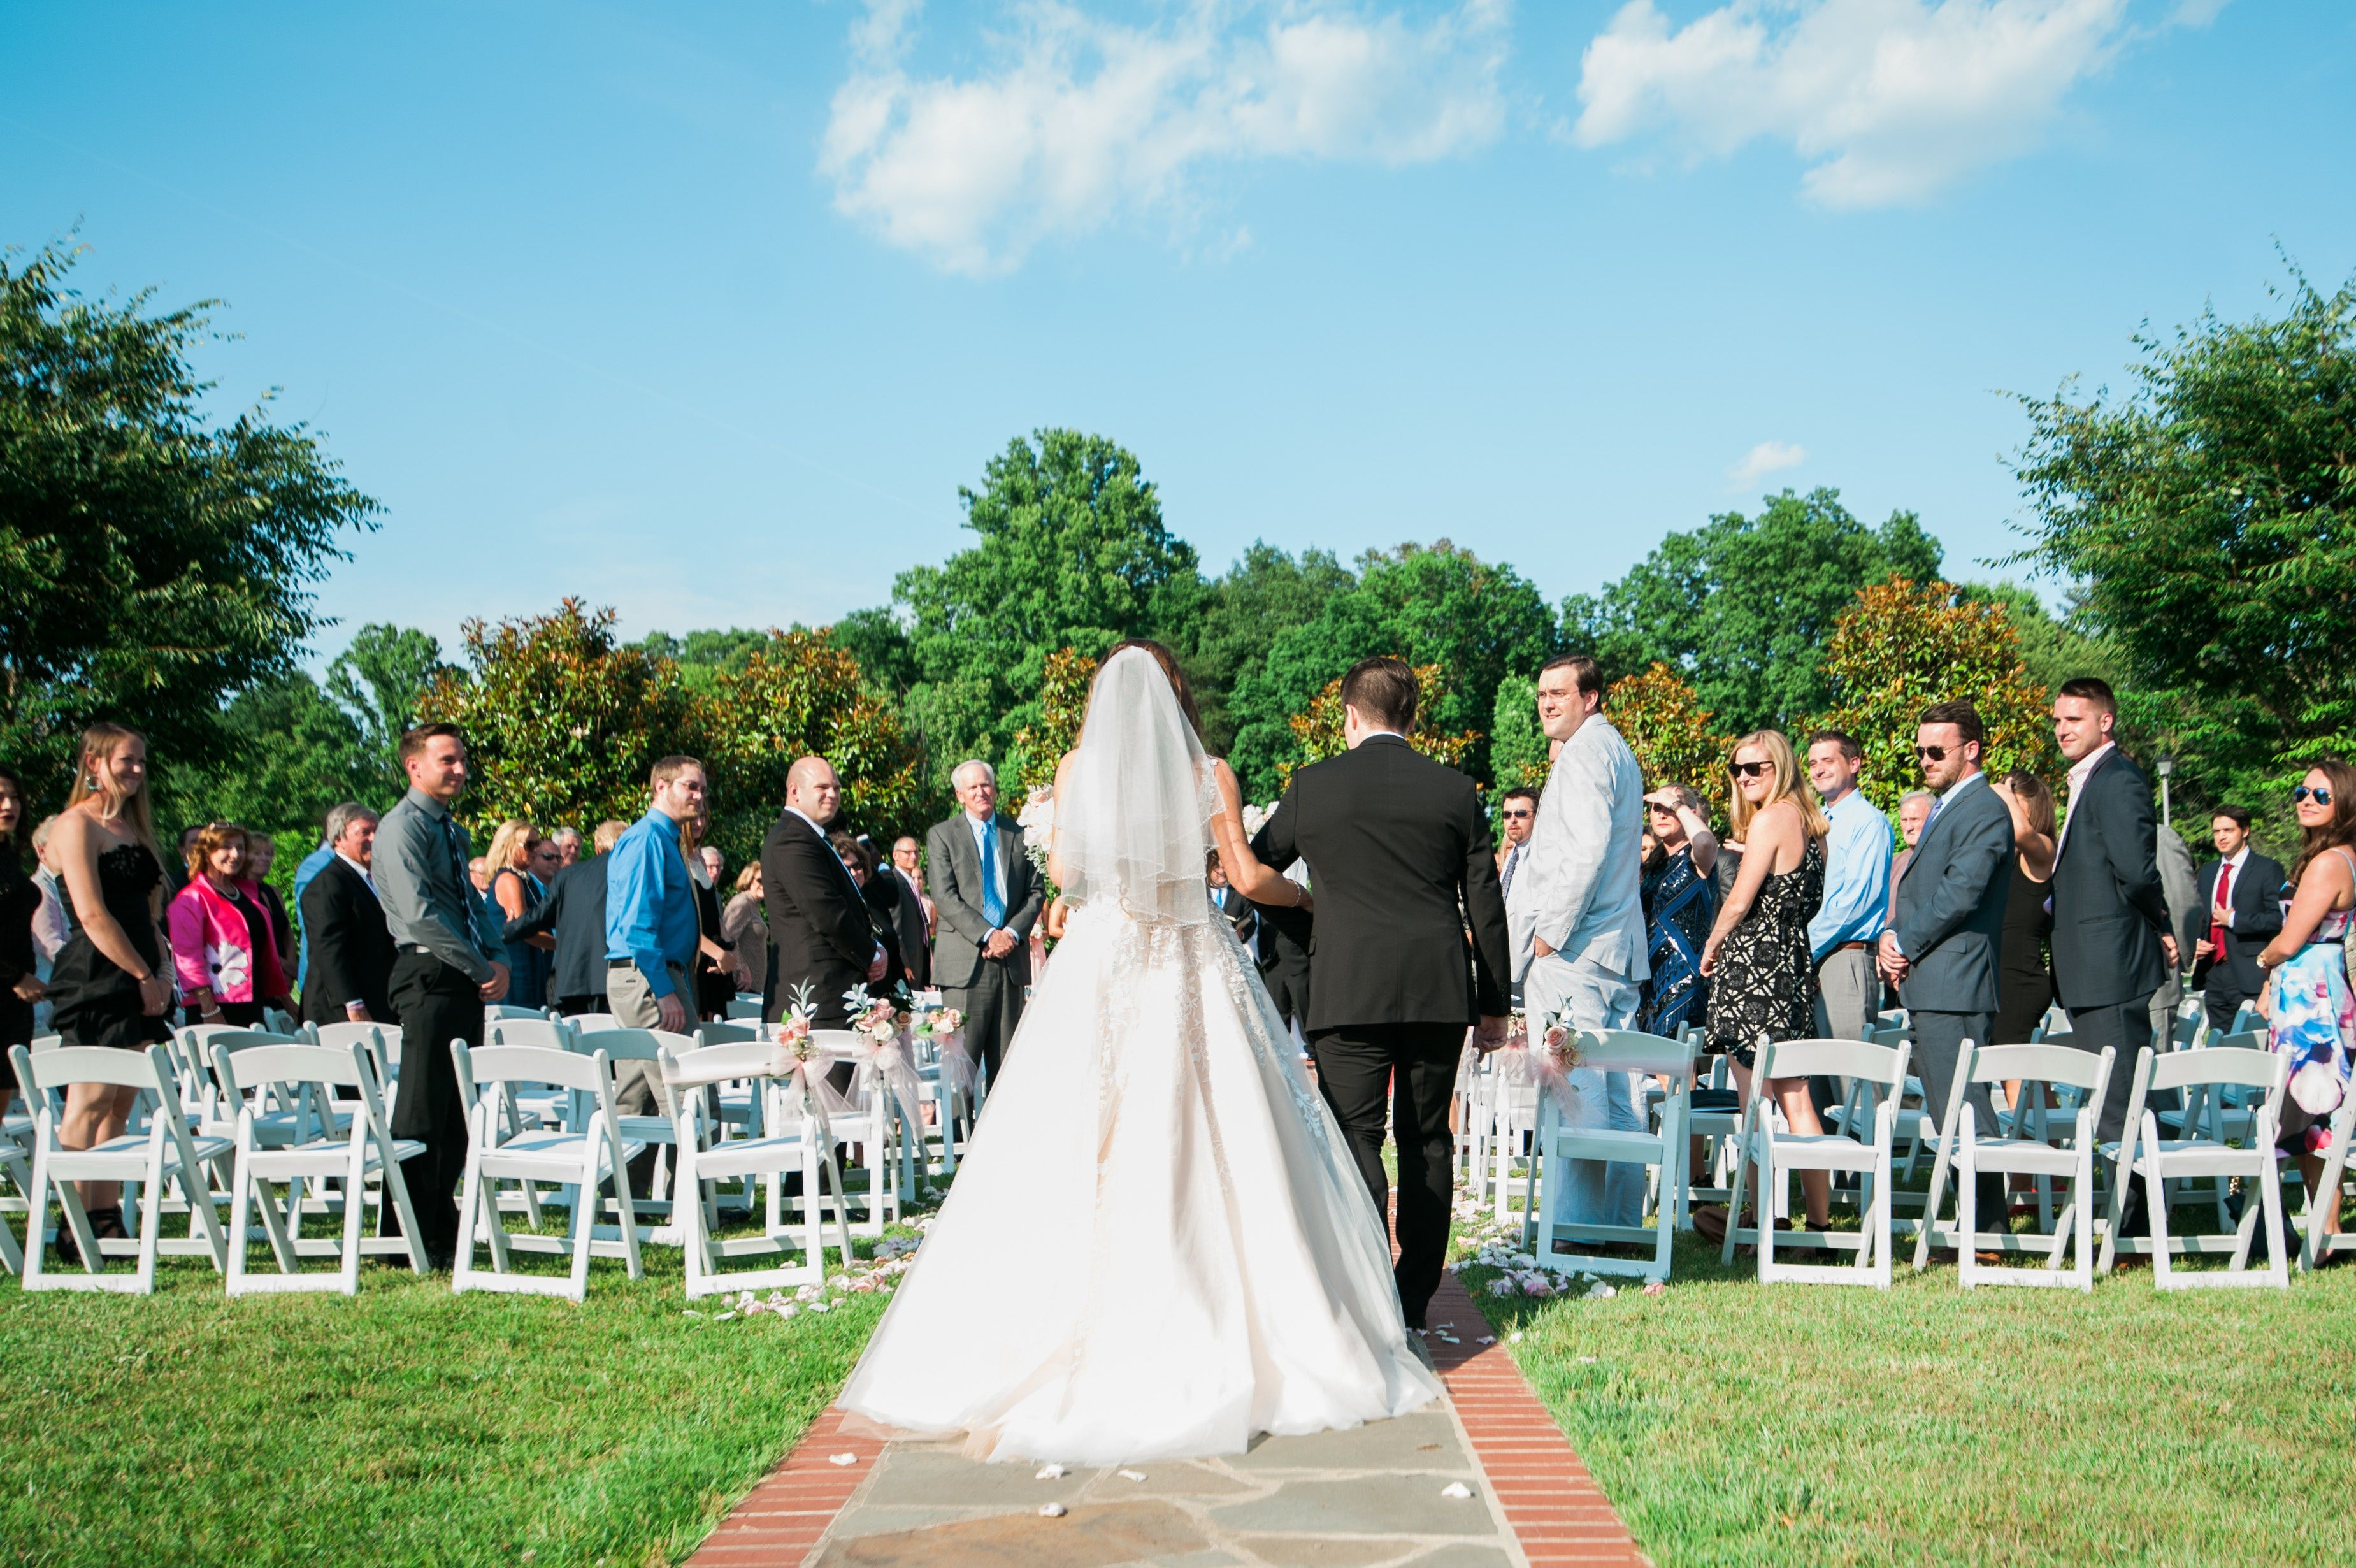 Summer wedding ceremony at Berry Hills Country Club, Charleston, WV ...